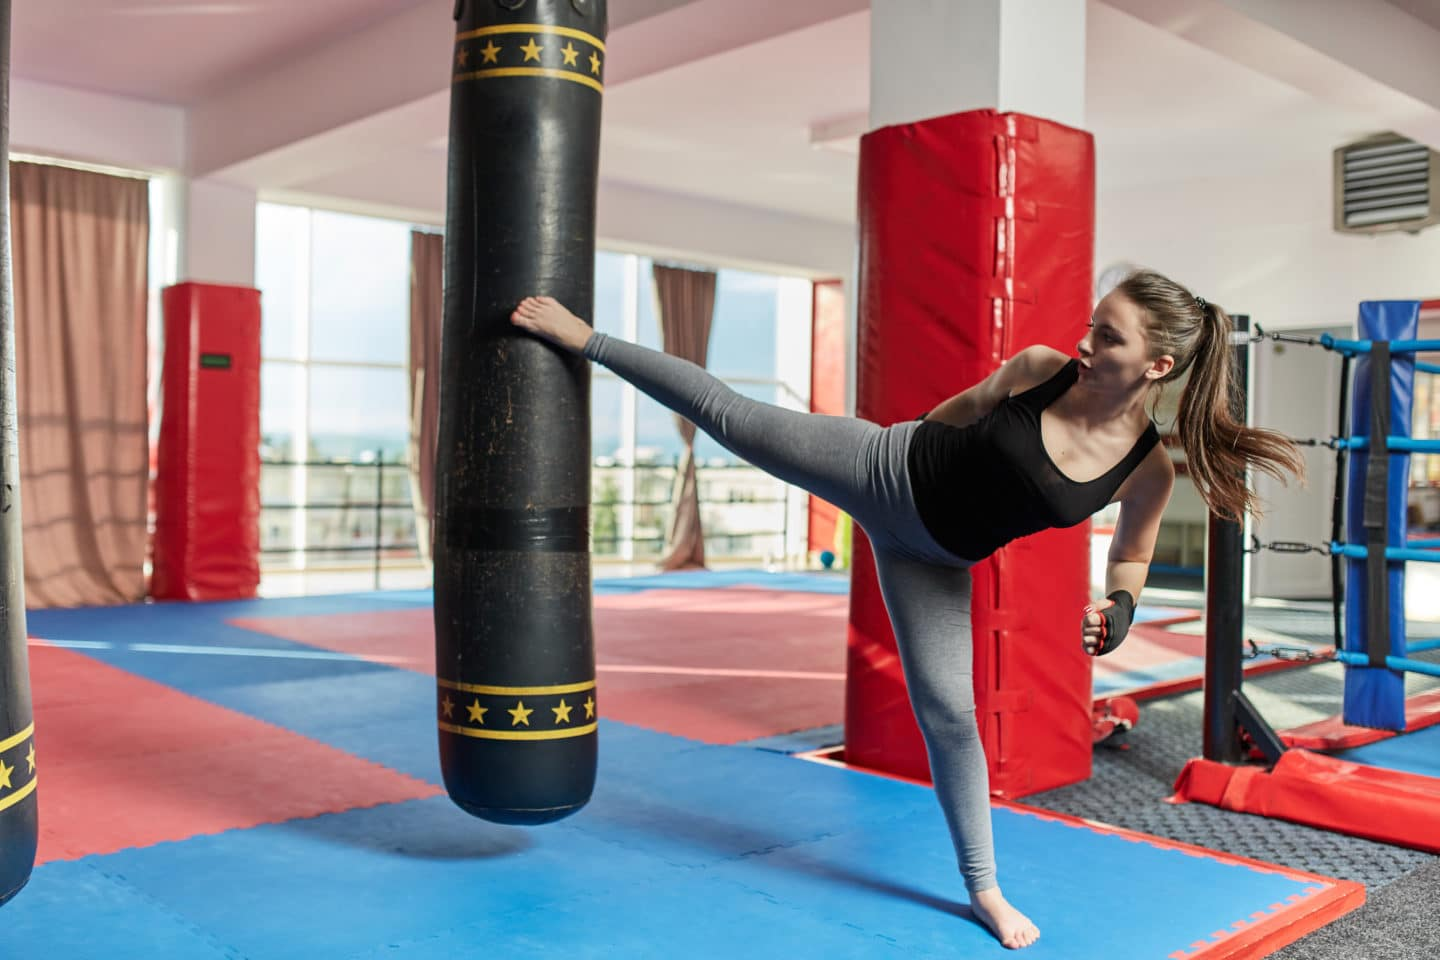 Muay thai female fighter training with the heavy bag